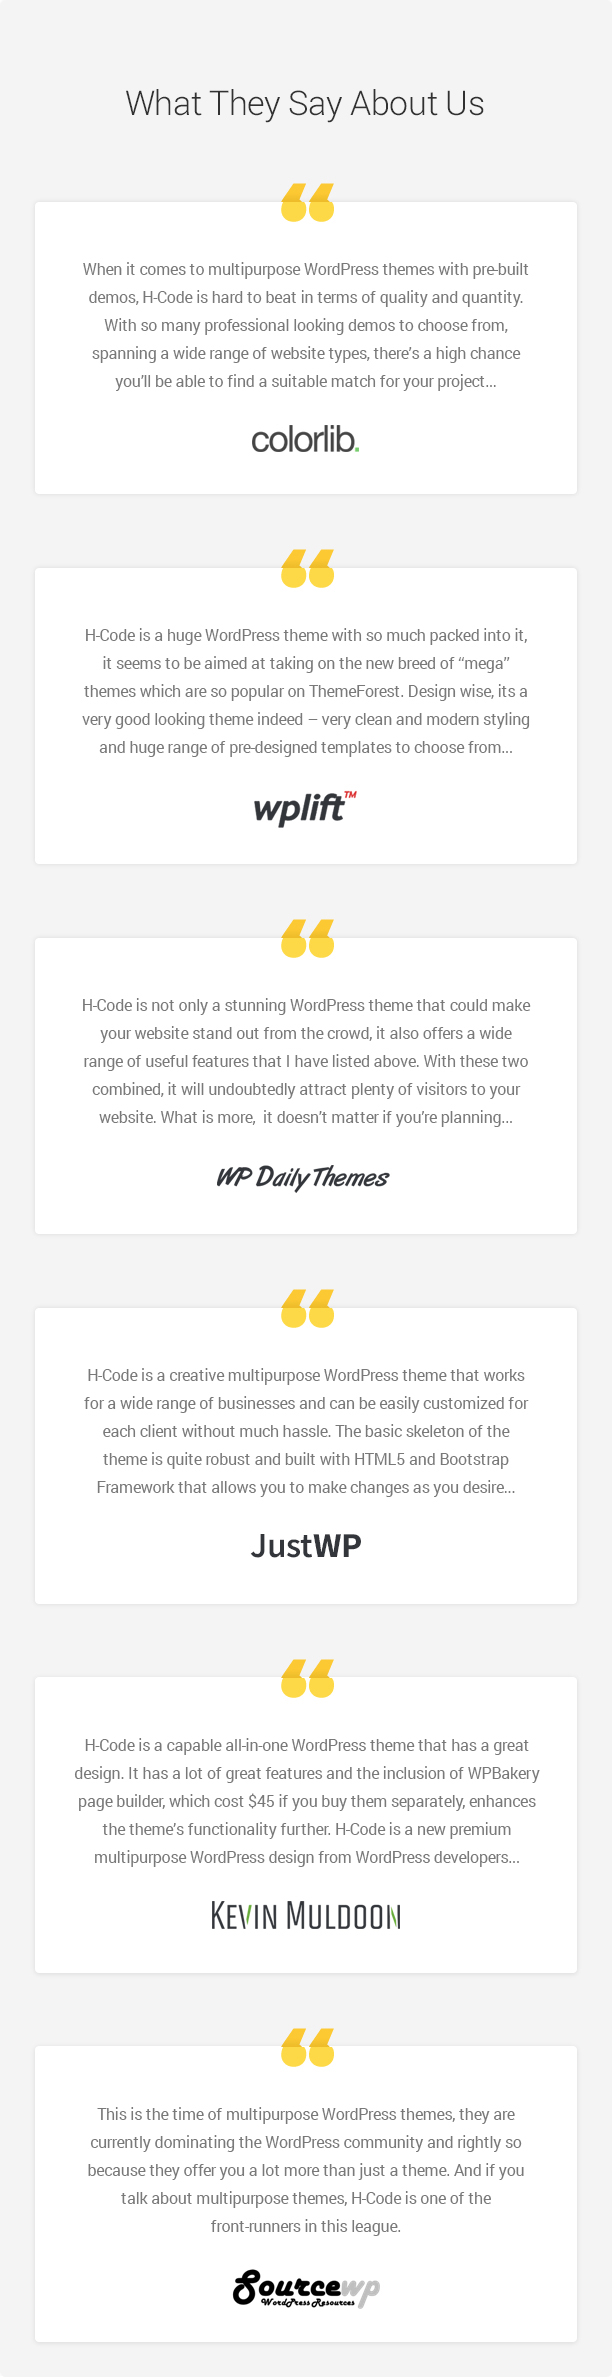 wp h code they wrote about new 08 feb 2019 - H-Code Responsive & Multipurpose WordPress Theme